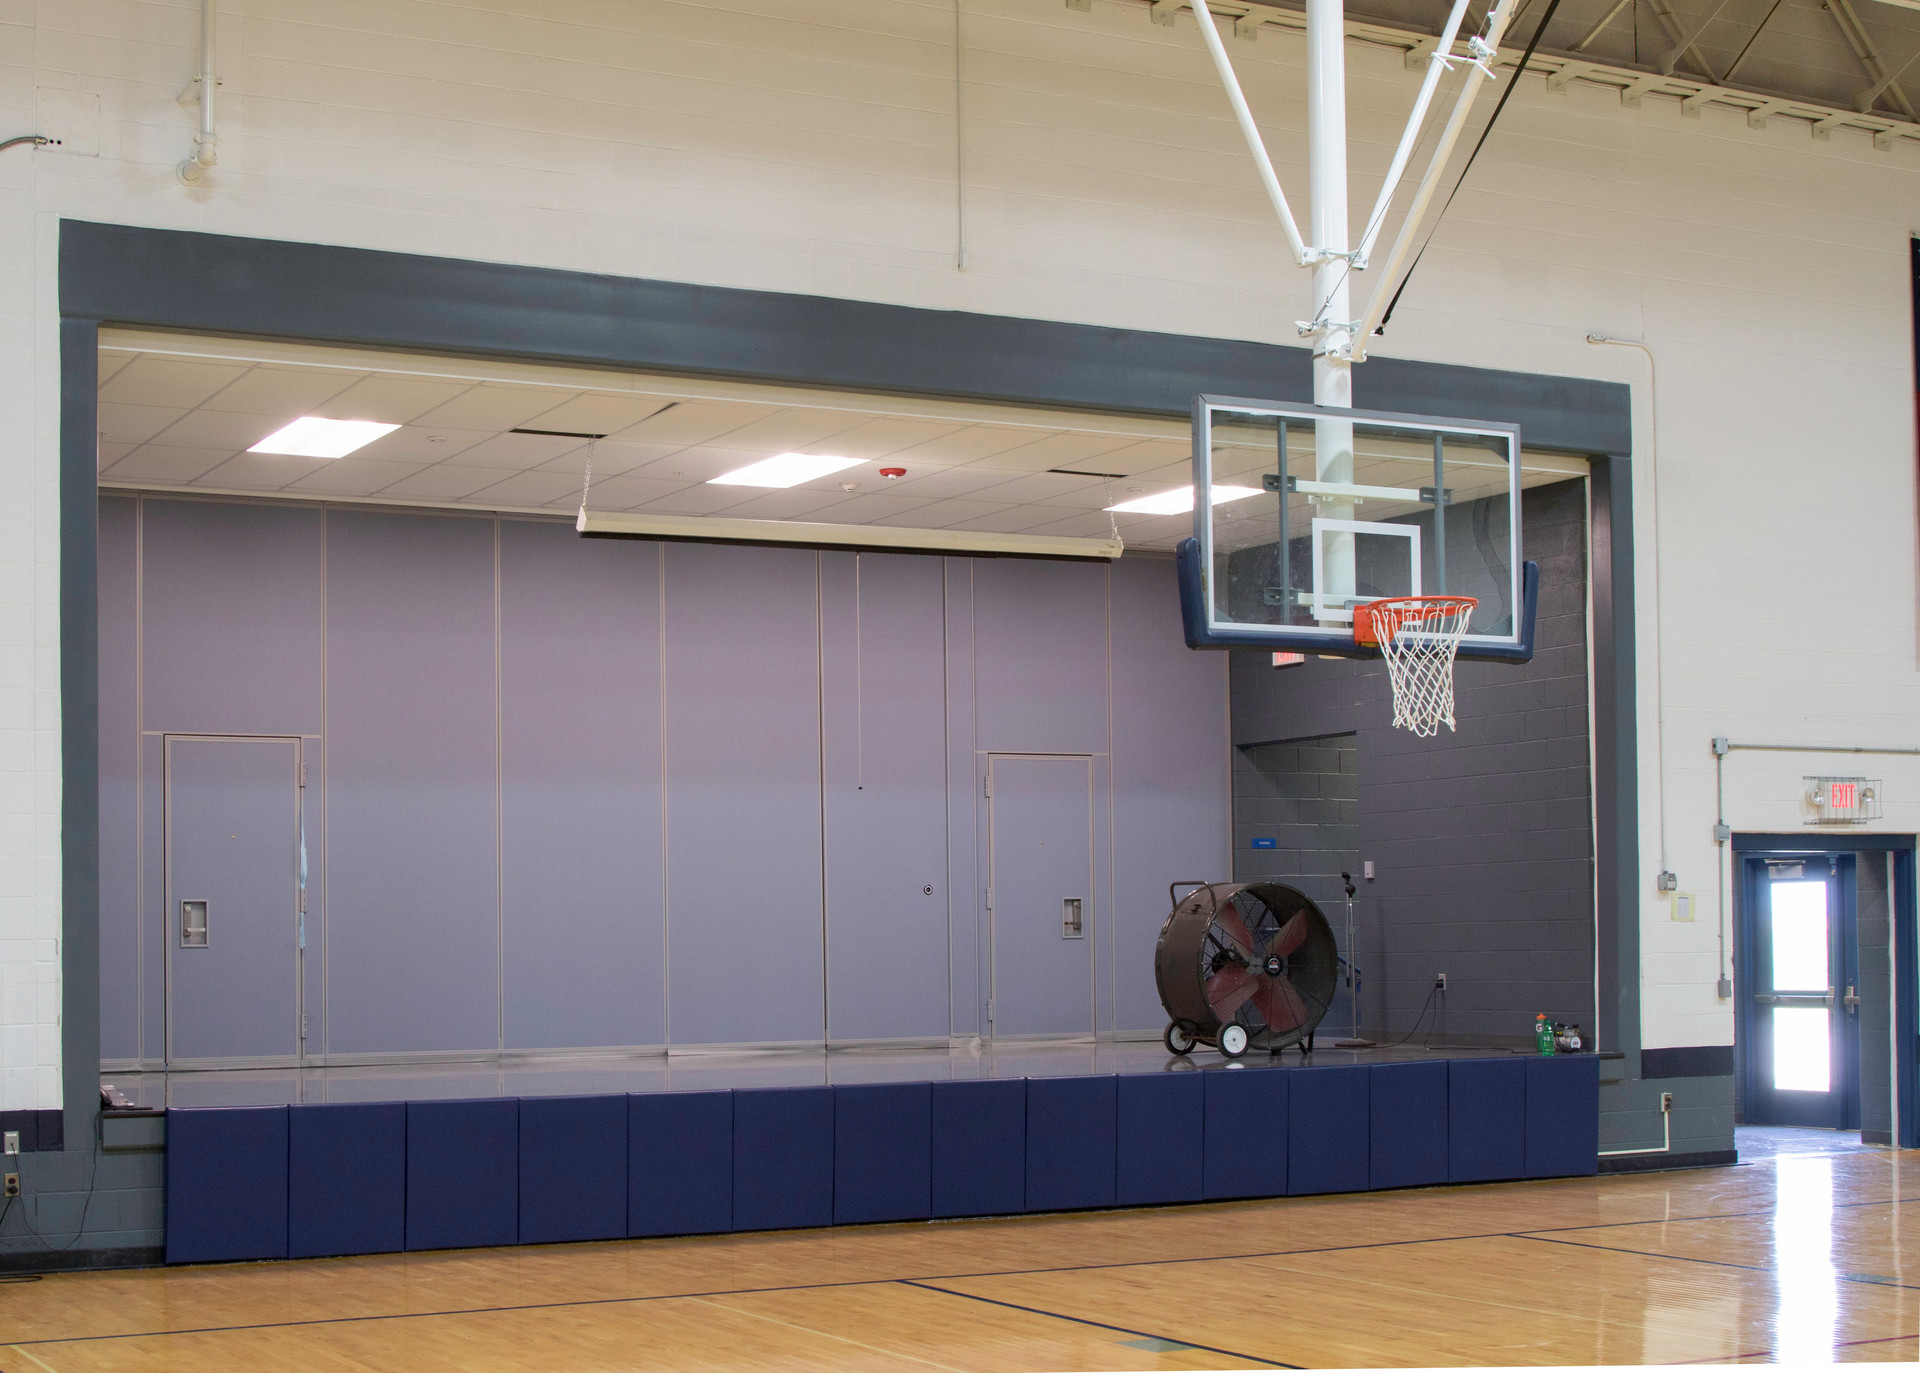 South Central High School: stage/gym